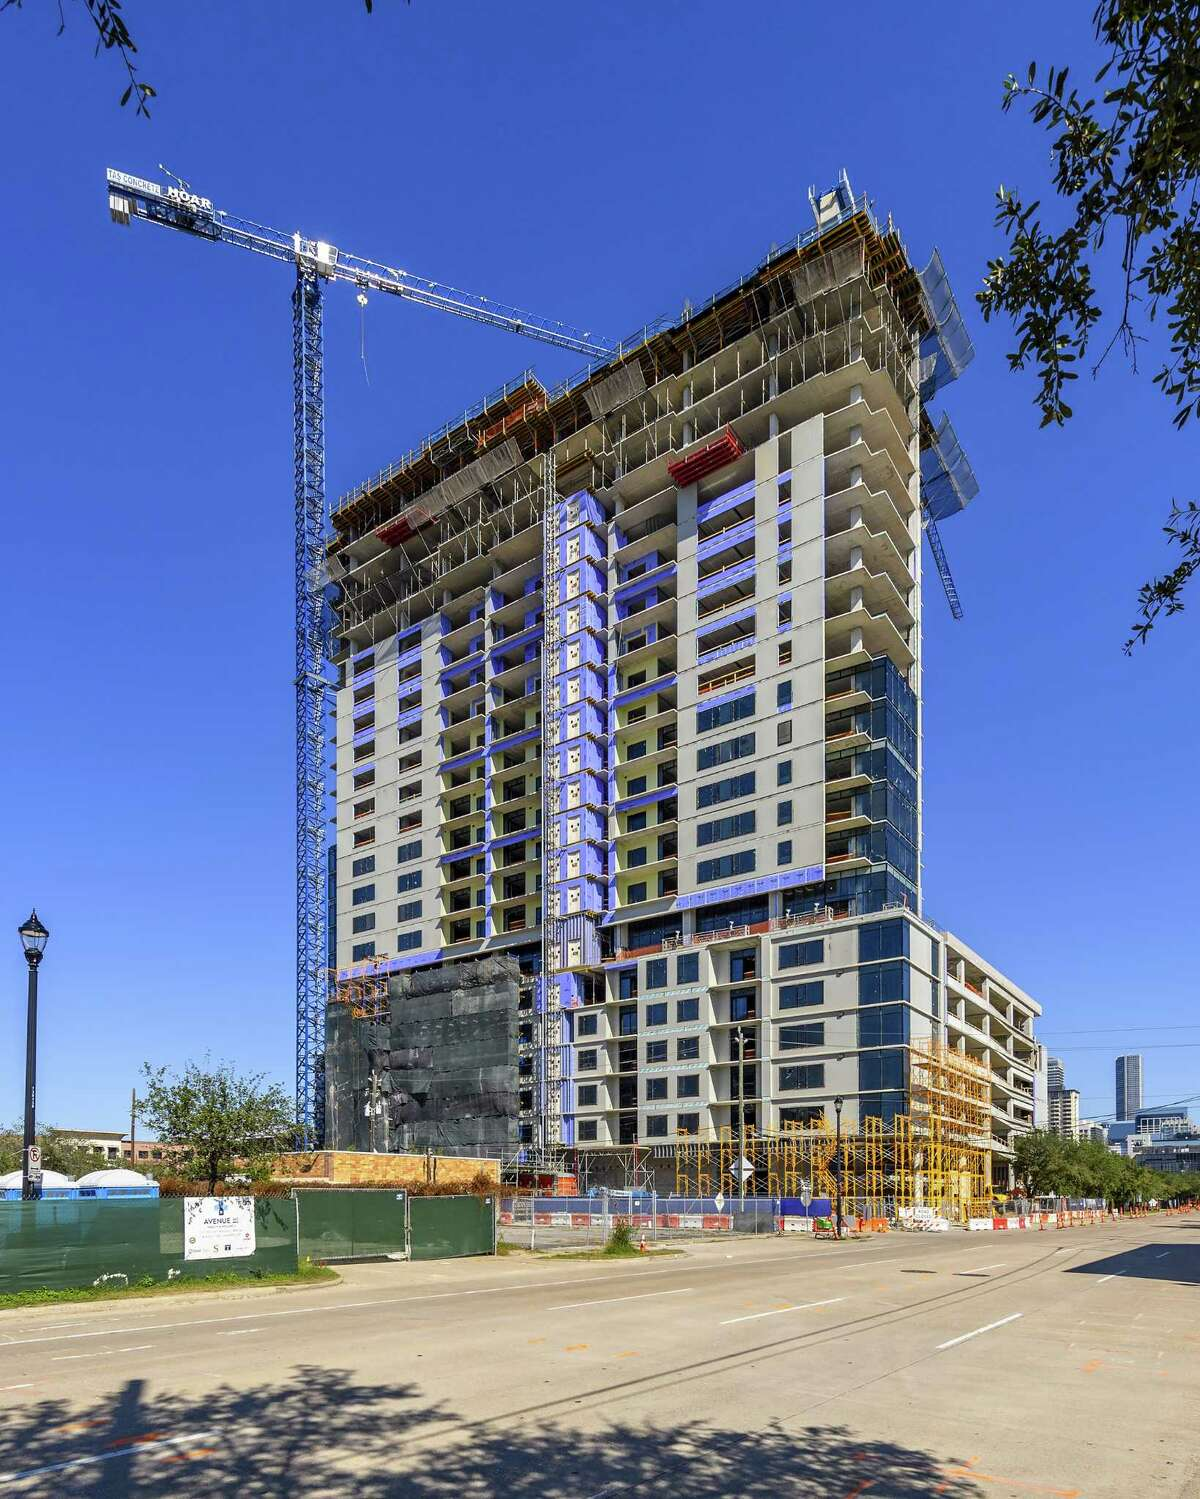 Hoar Construction reached final height on Australia developer Caydon's 27-story apartment tower at 2850 Fannin in Midtown on Thursday, Dec. 6, 2018. Houston's rent growth slowed in 2018.